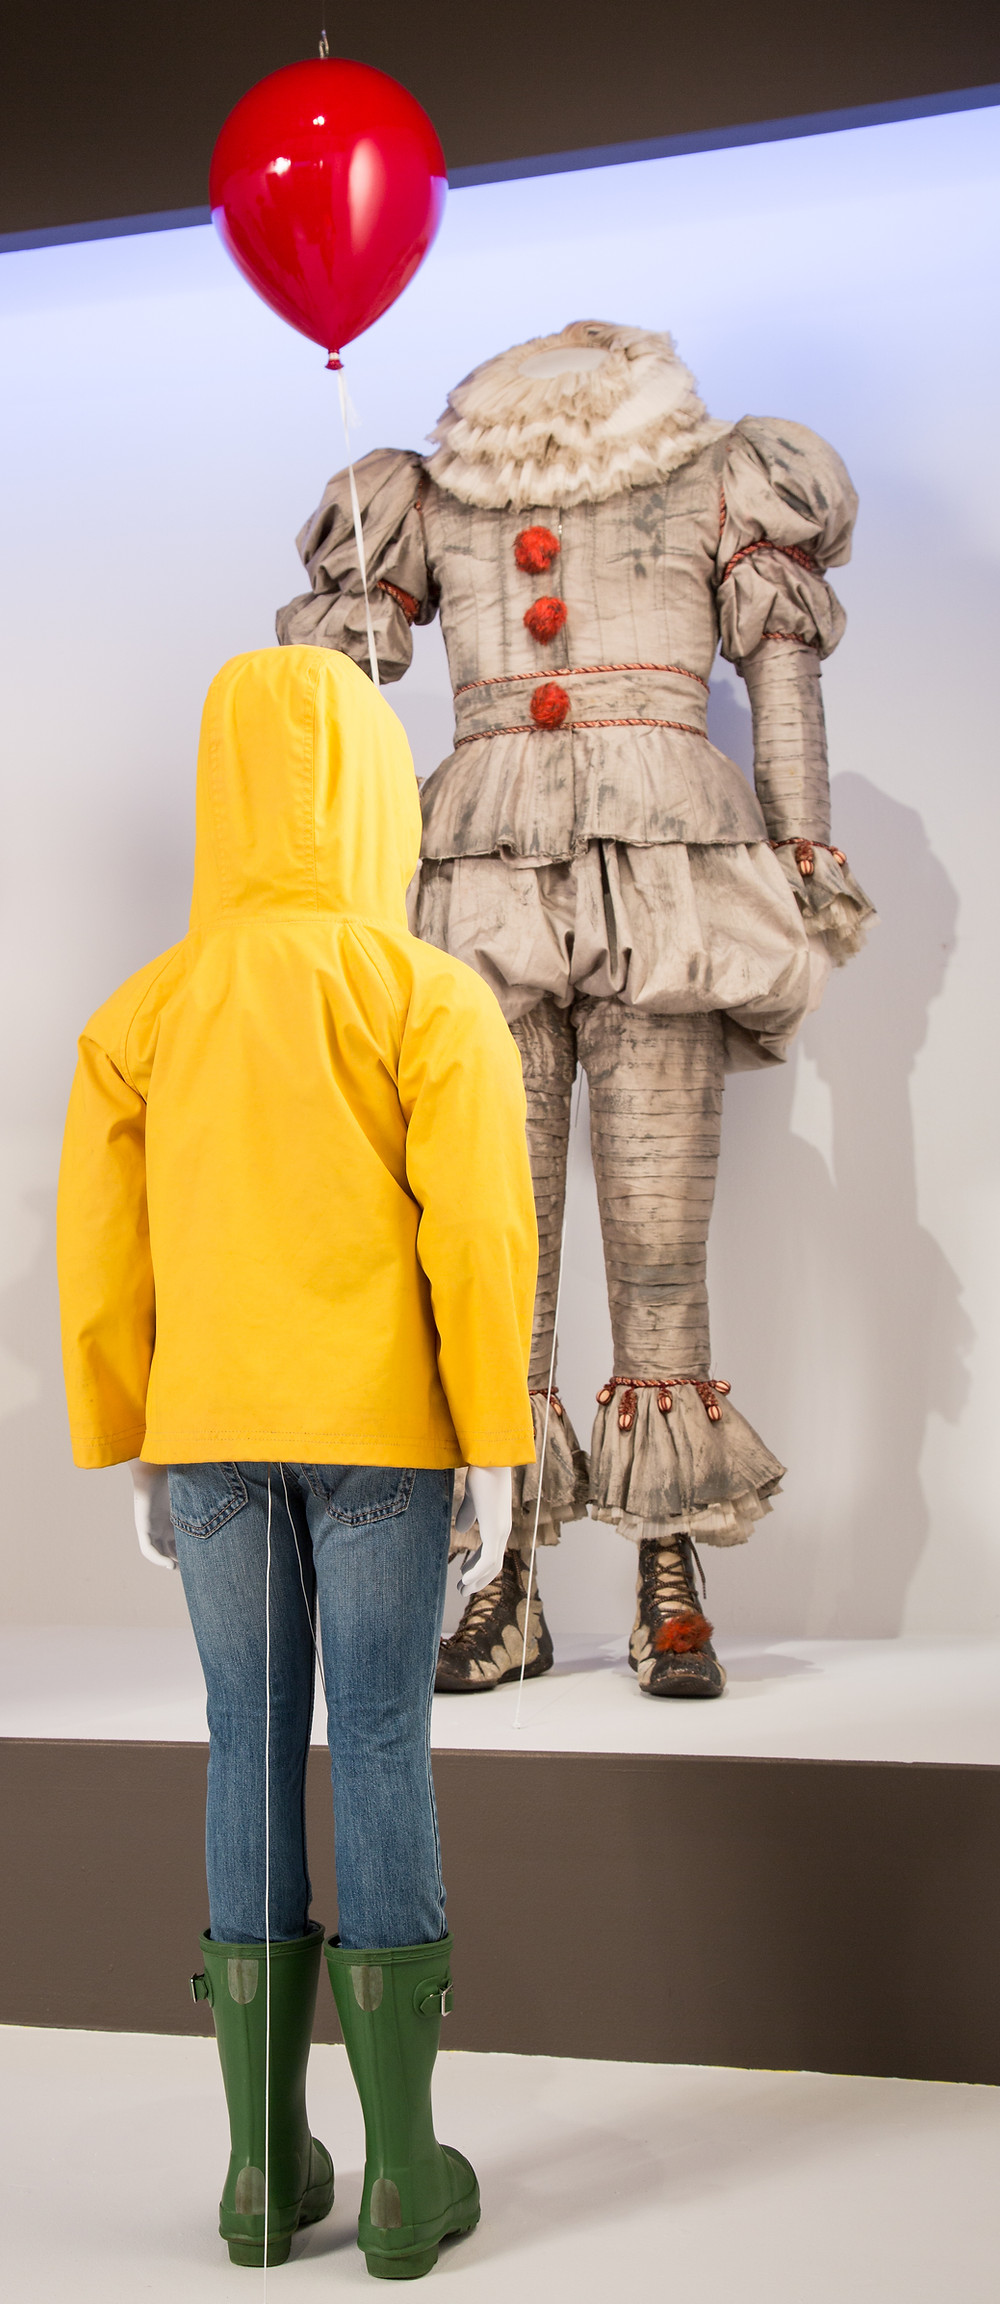 """It"" costumes by Janie Bryant. (L to R) Costumes worn by actors: Bill Skarsgård as Pennywise, Jackson Robert Scott as Georgie Denbrough"